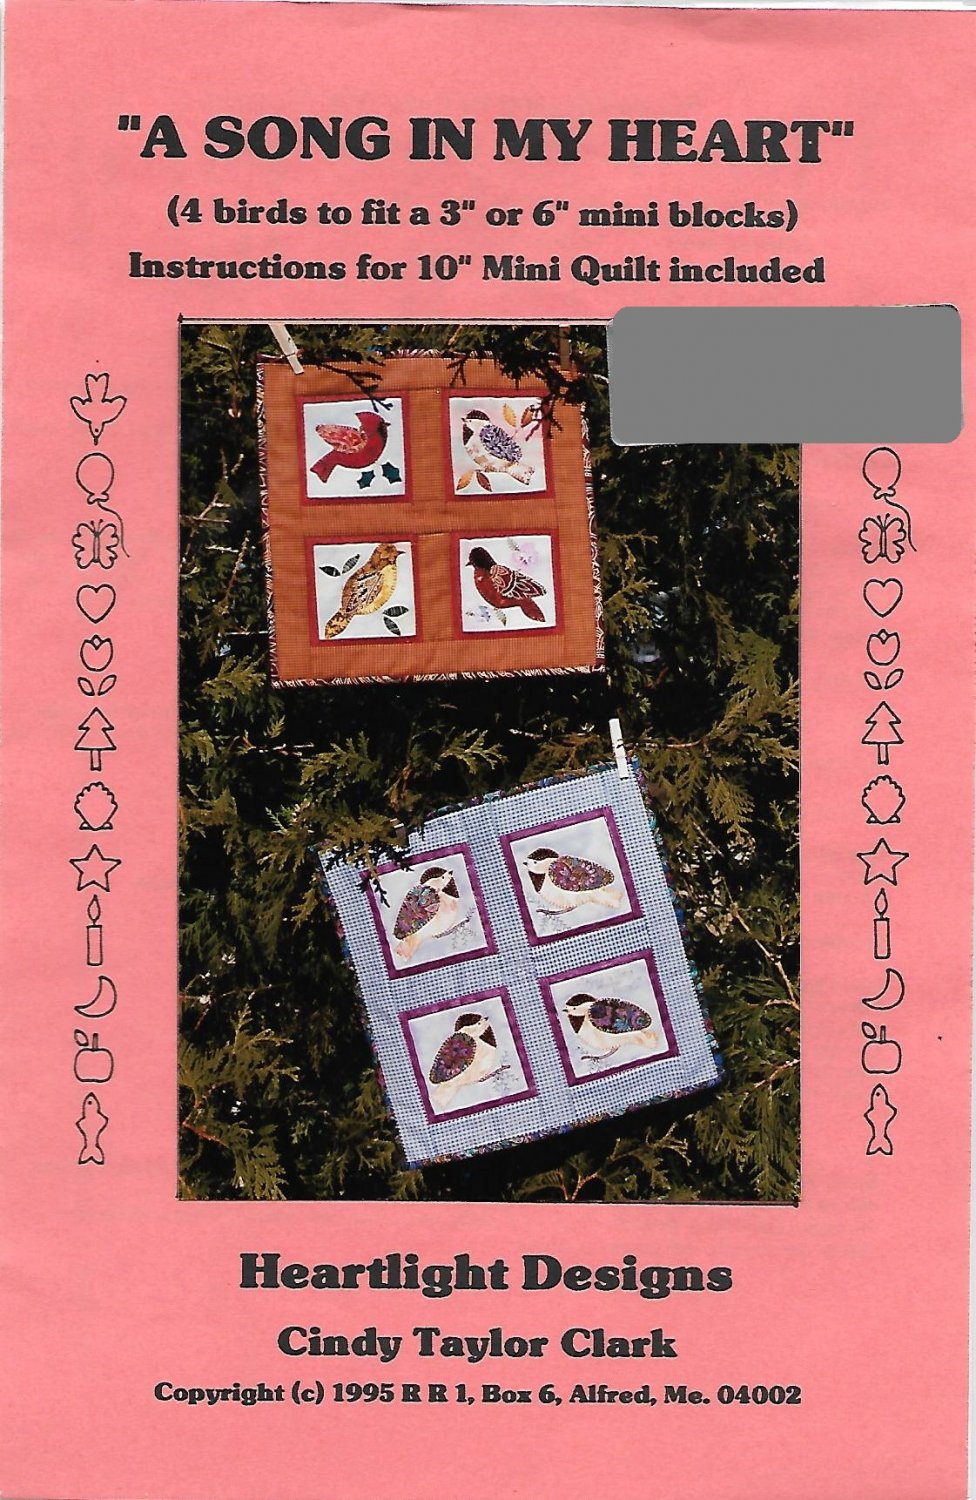 A Song in my Heart Mini Quilt Pattern